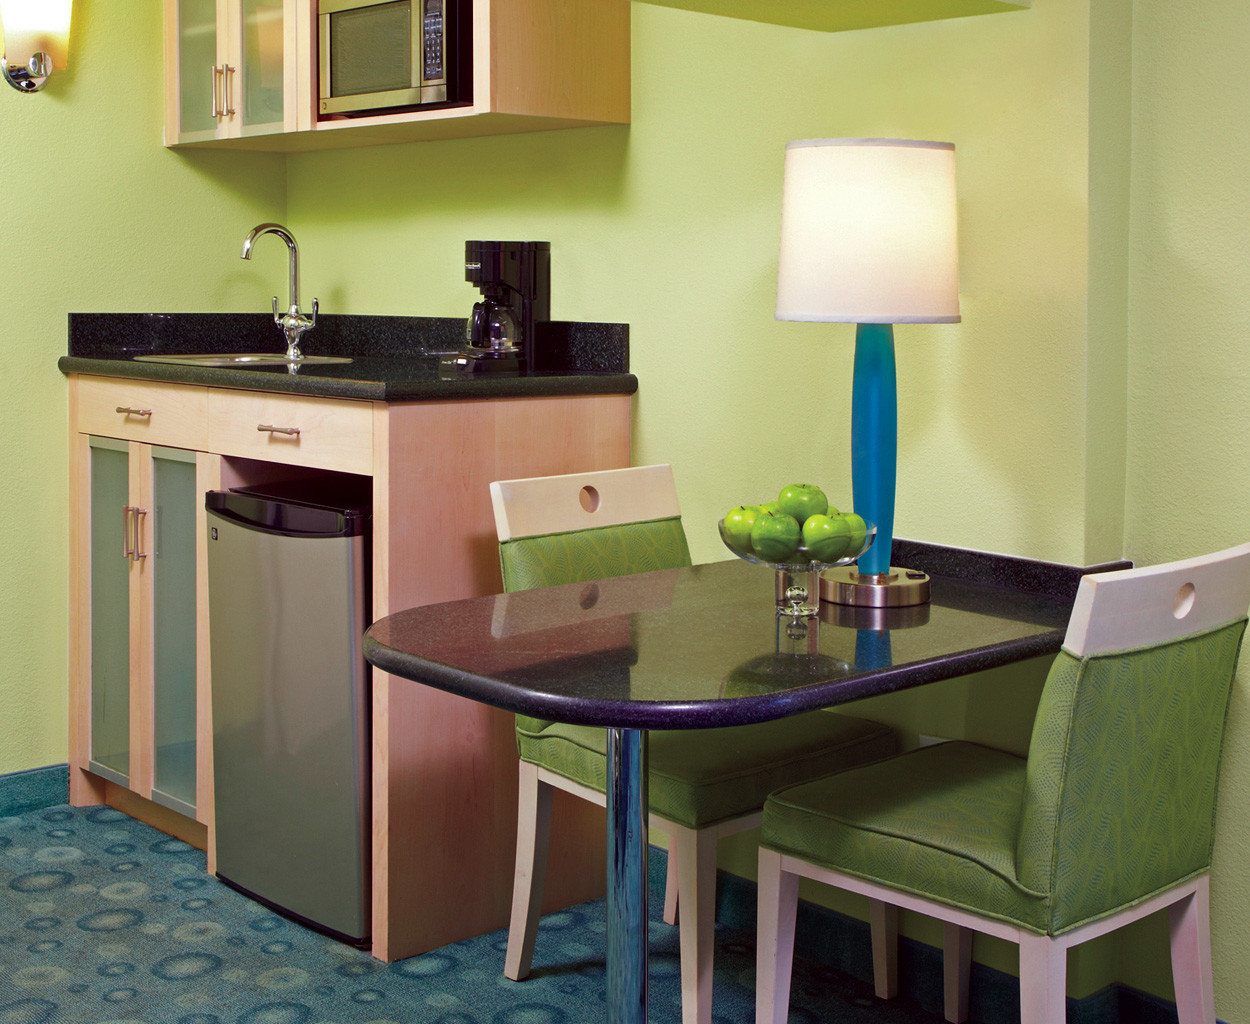 Boutique Budget Kitchen property desk green home office cabinetry cottage lamp